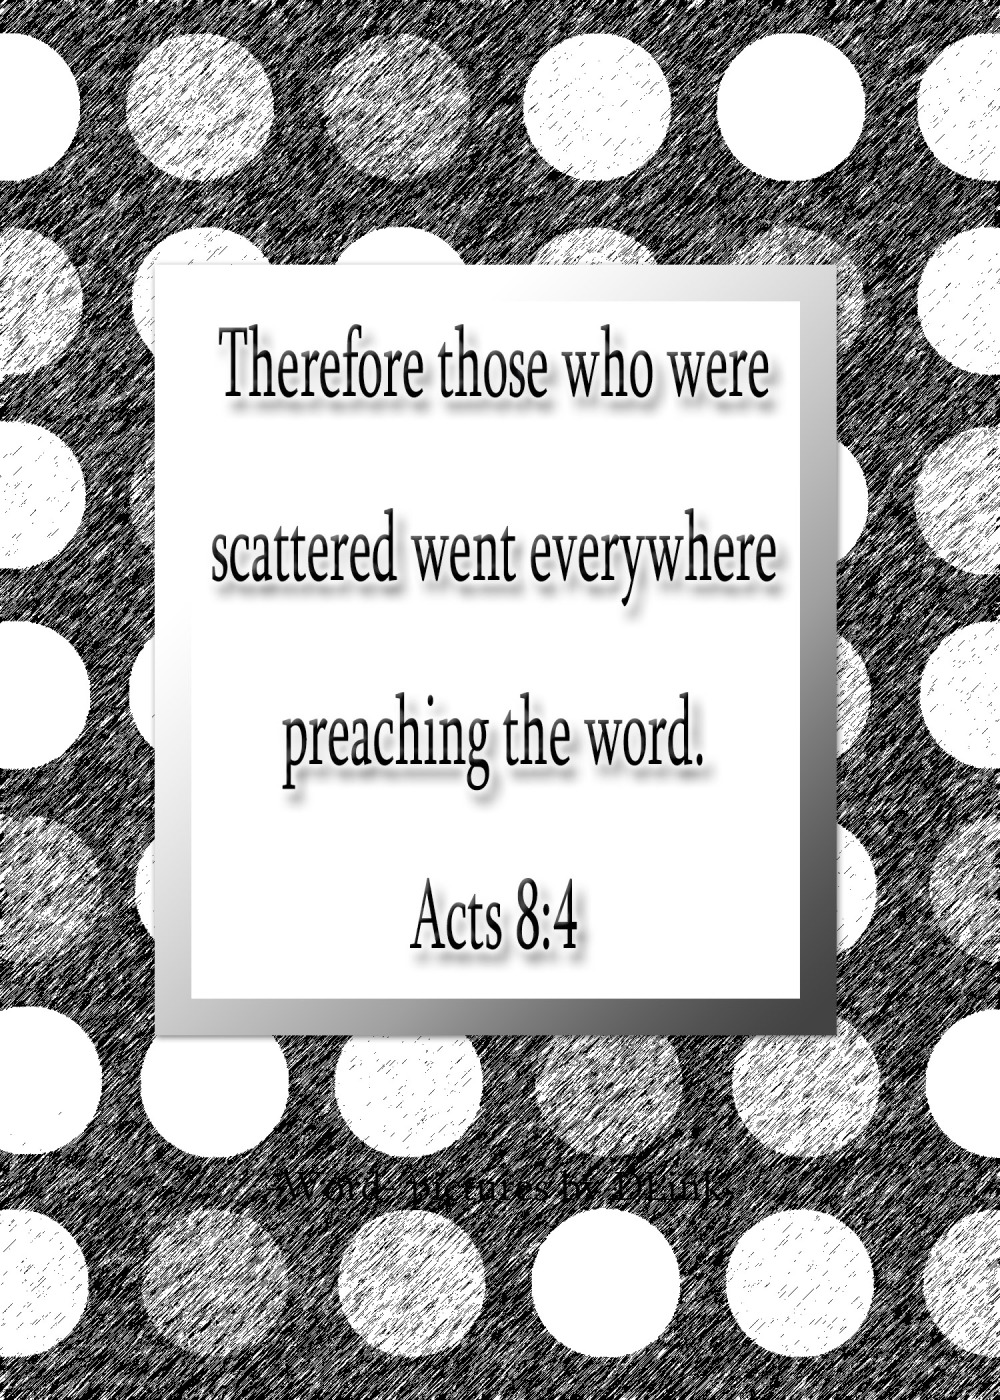 Acts 8;4